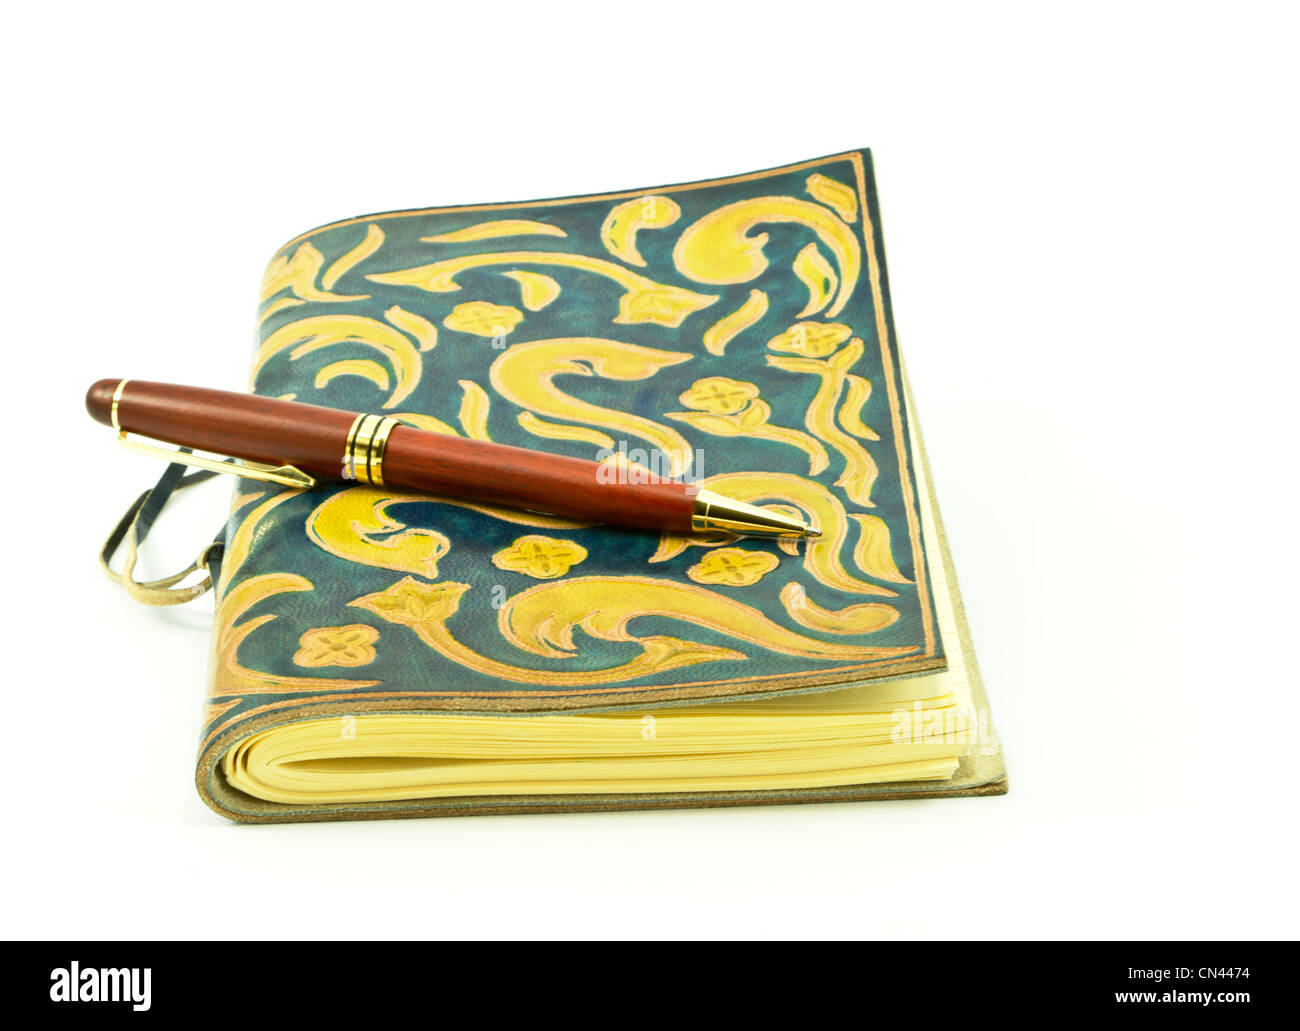 Rosewood pen placed on leather journal. - Stock Image